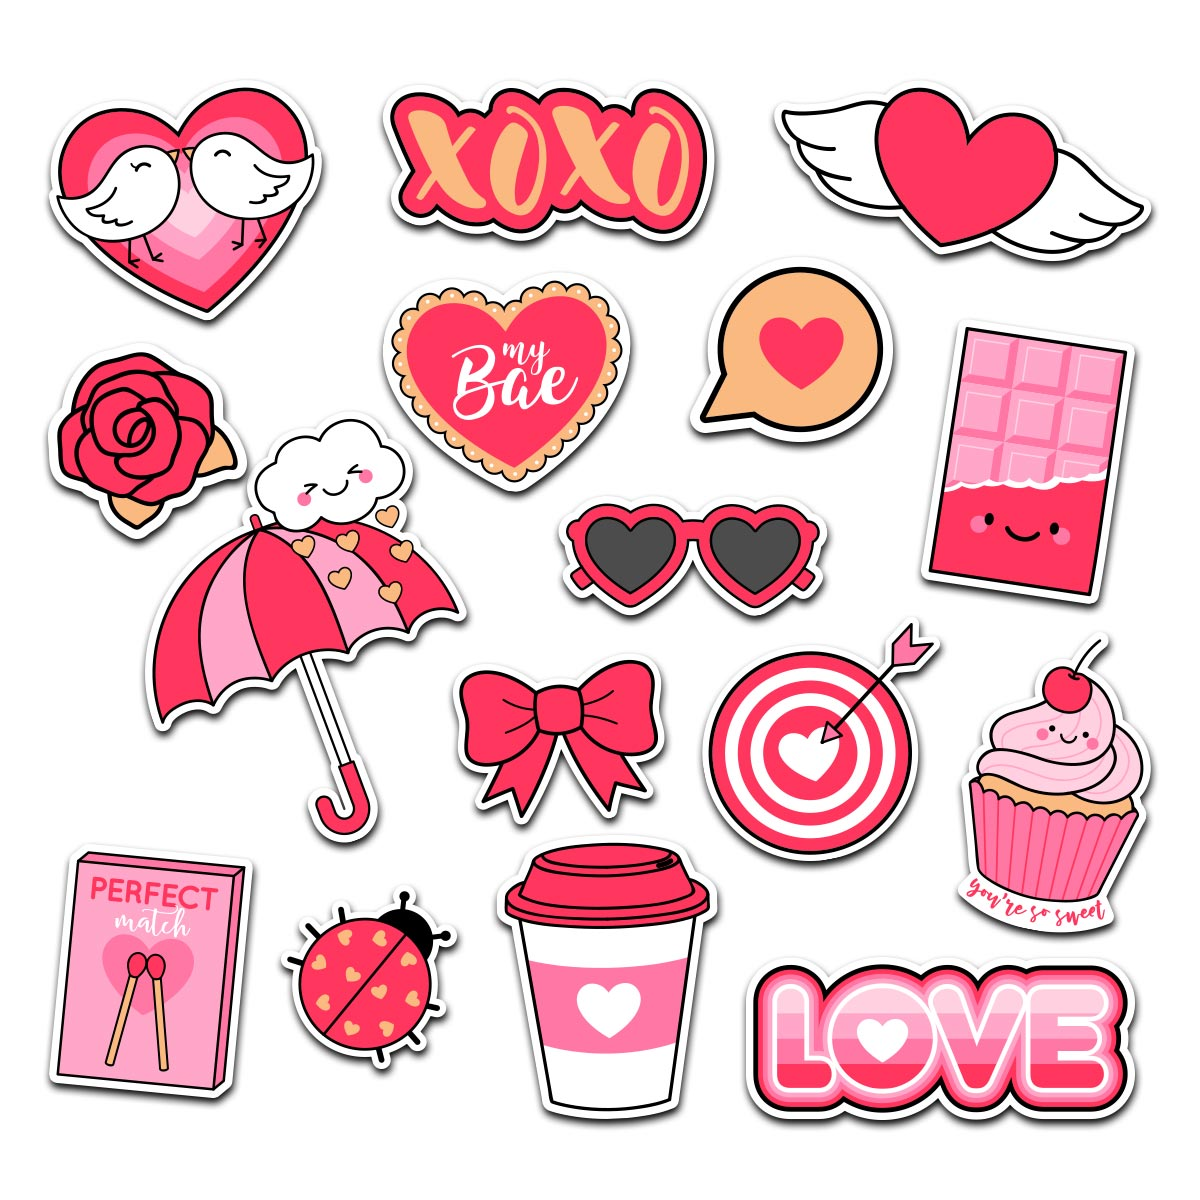 Love Is In The Air - Valentines Day Magnet Bundle